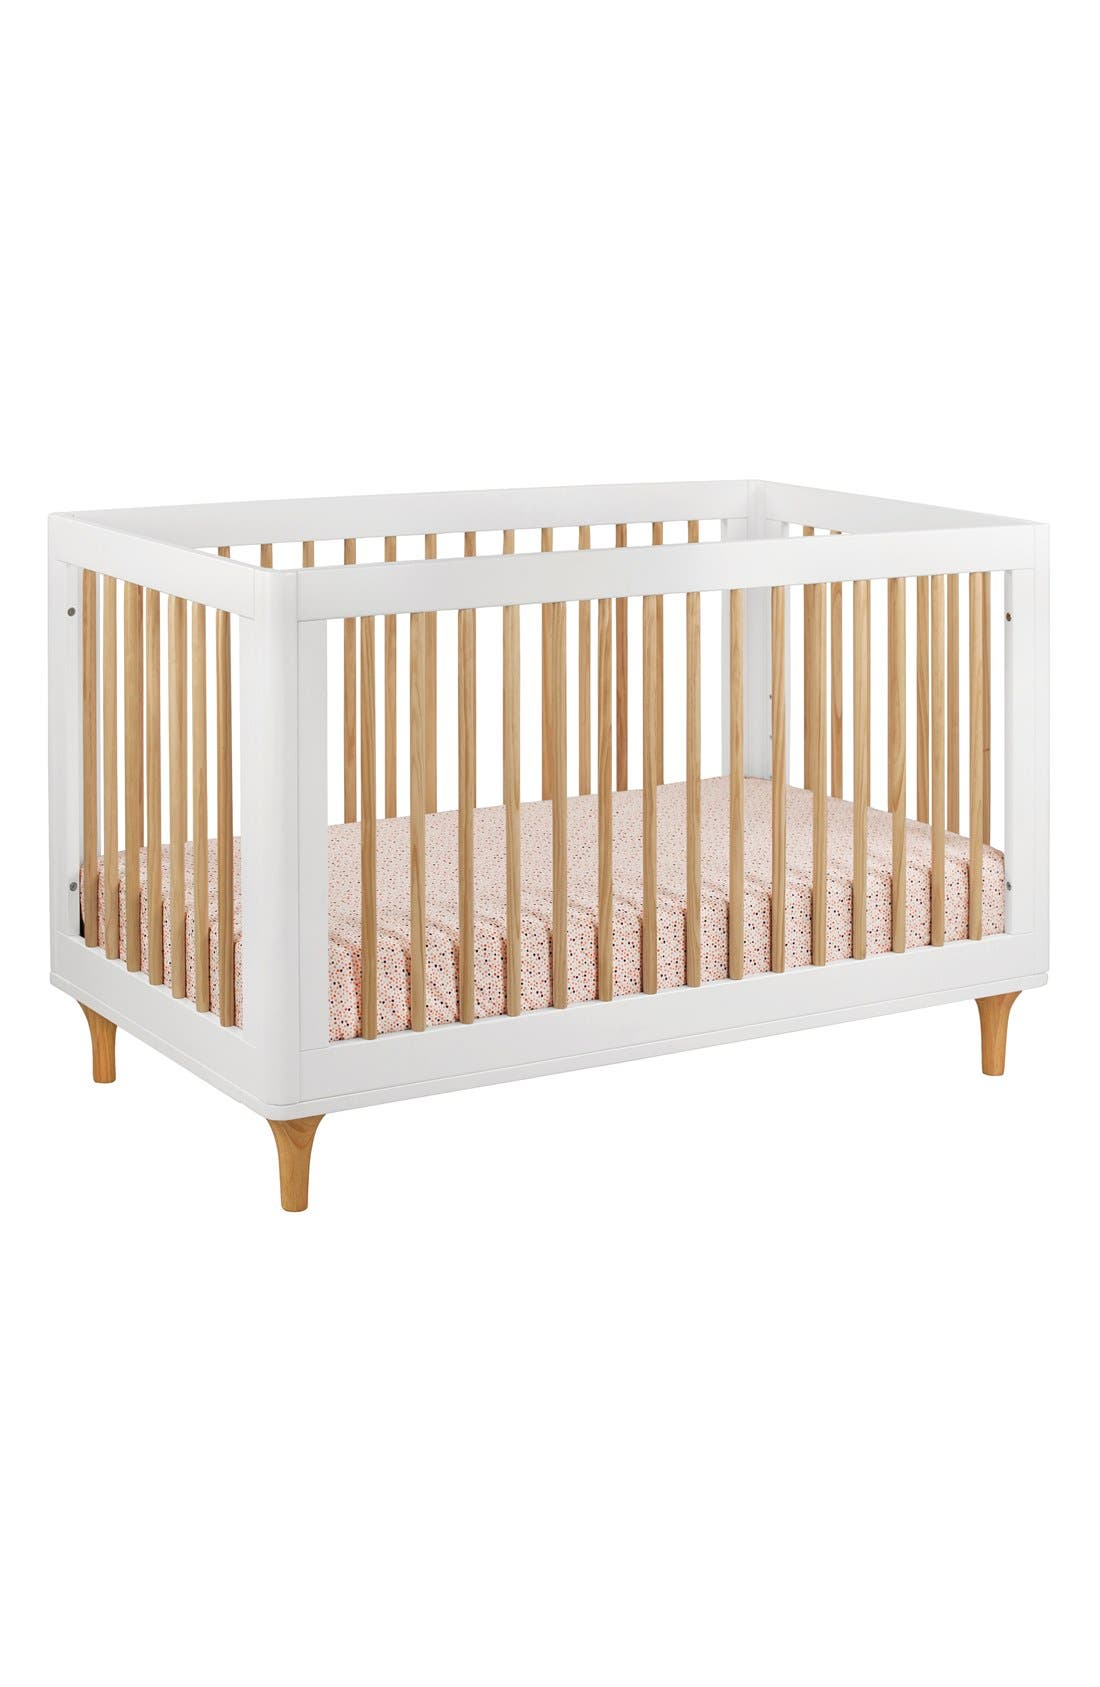 'Lolly' 3-in-1 Convertible Crib,                         Main,                         color, 250